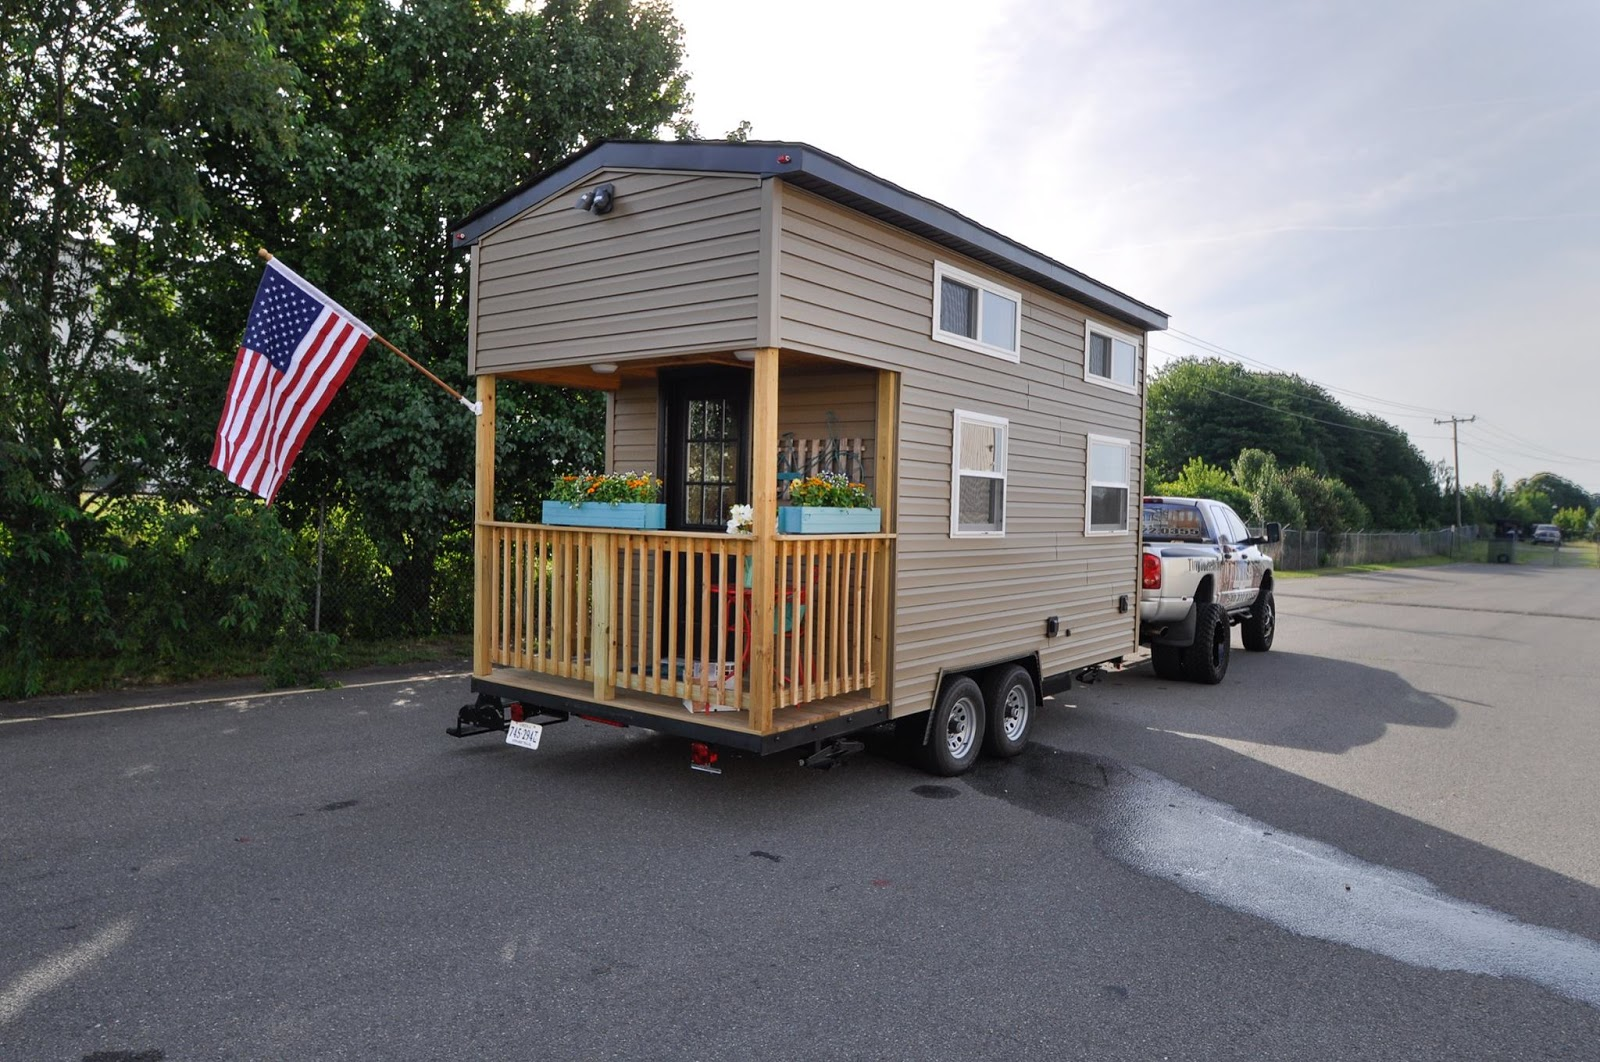 For more information on this tiny home model contact tiny house building company here